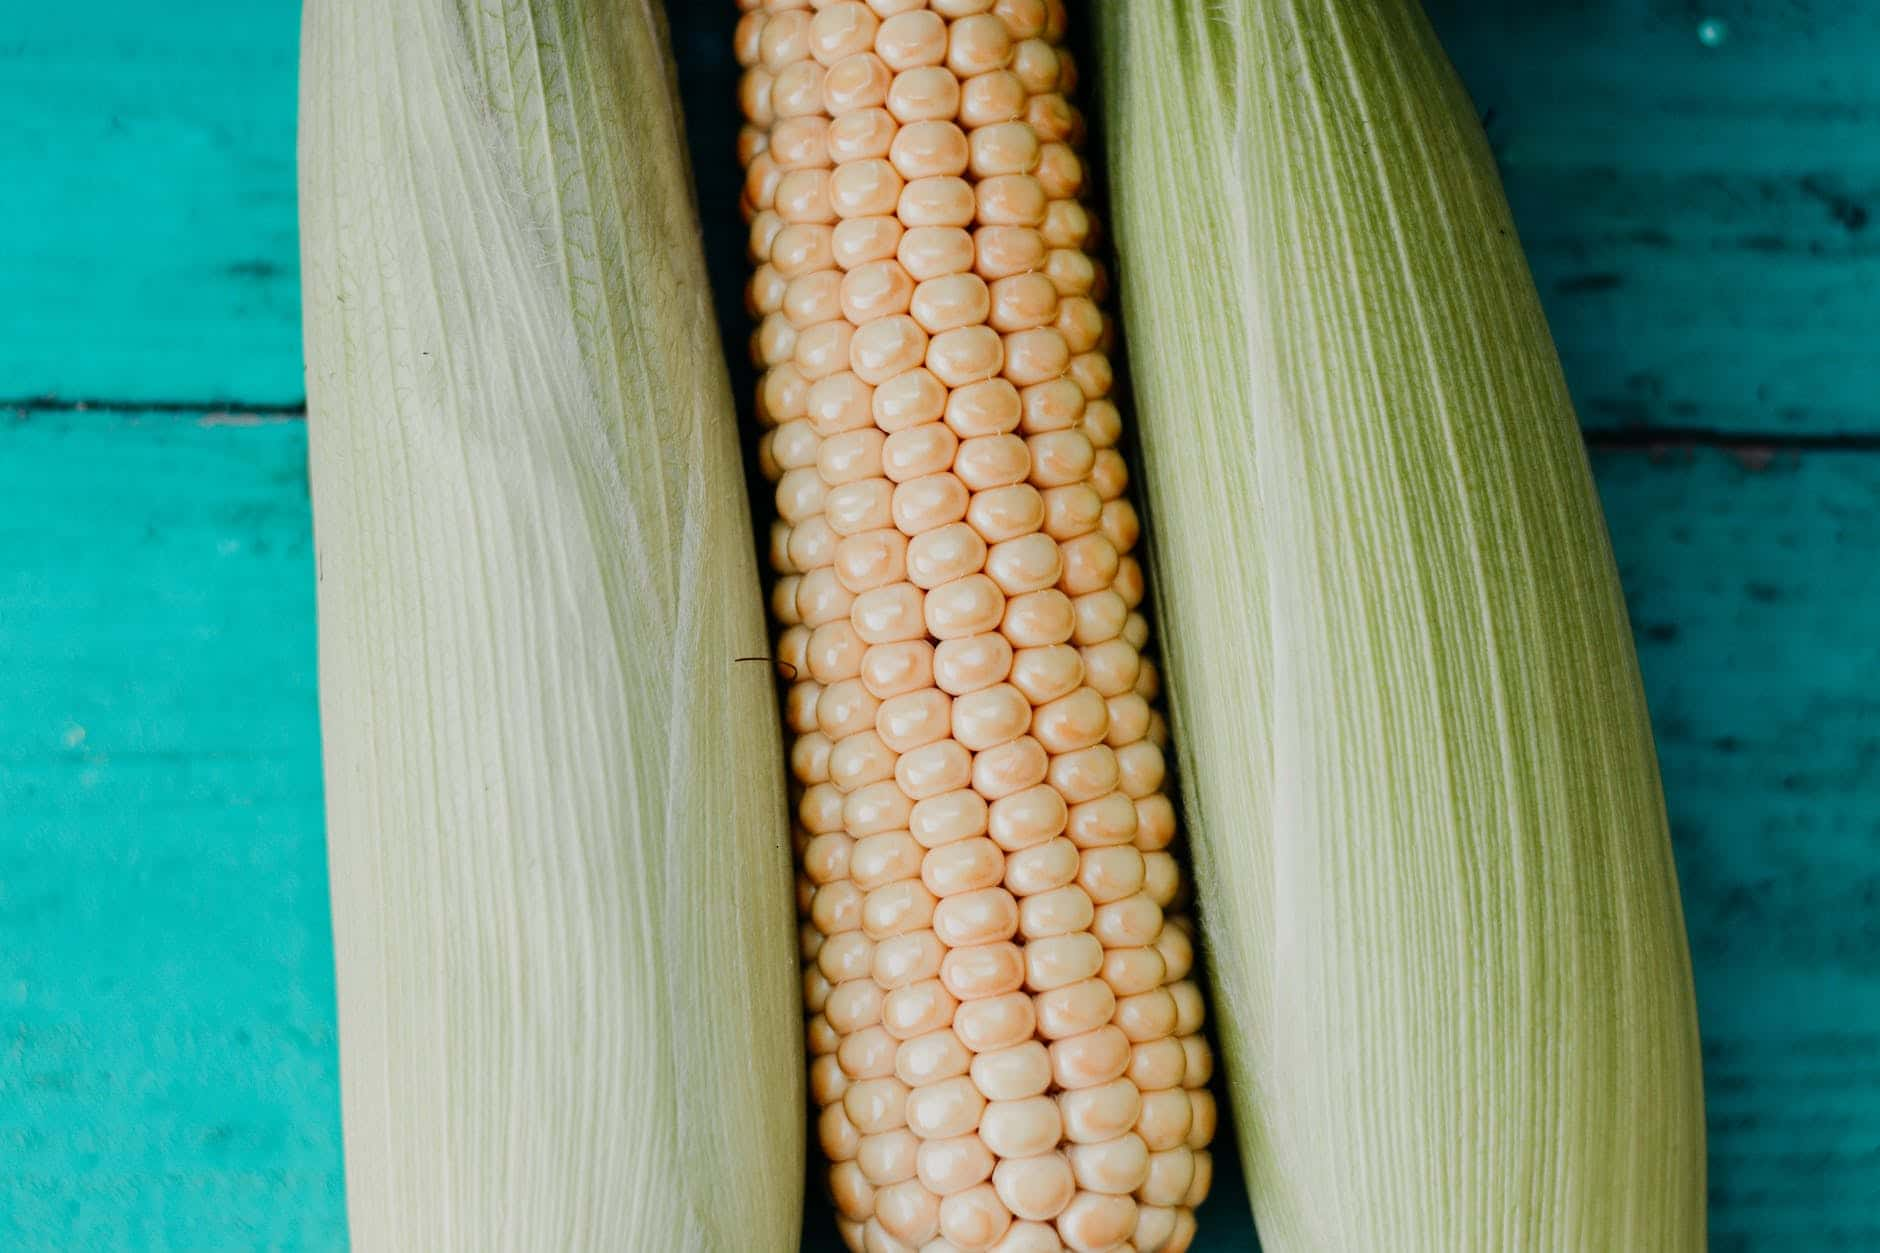 Storing fresh corn on the cob